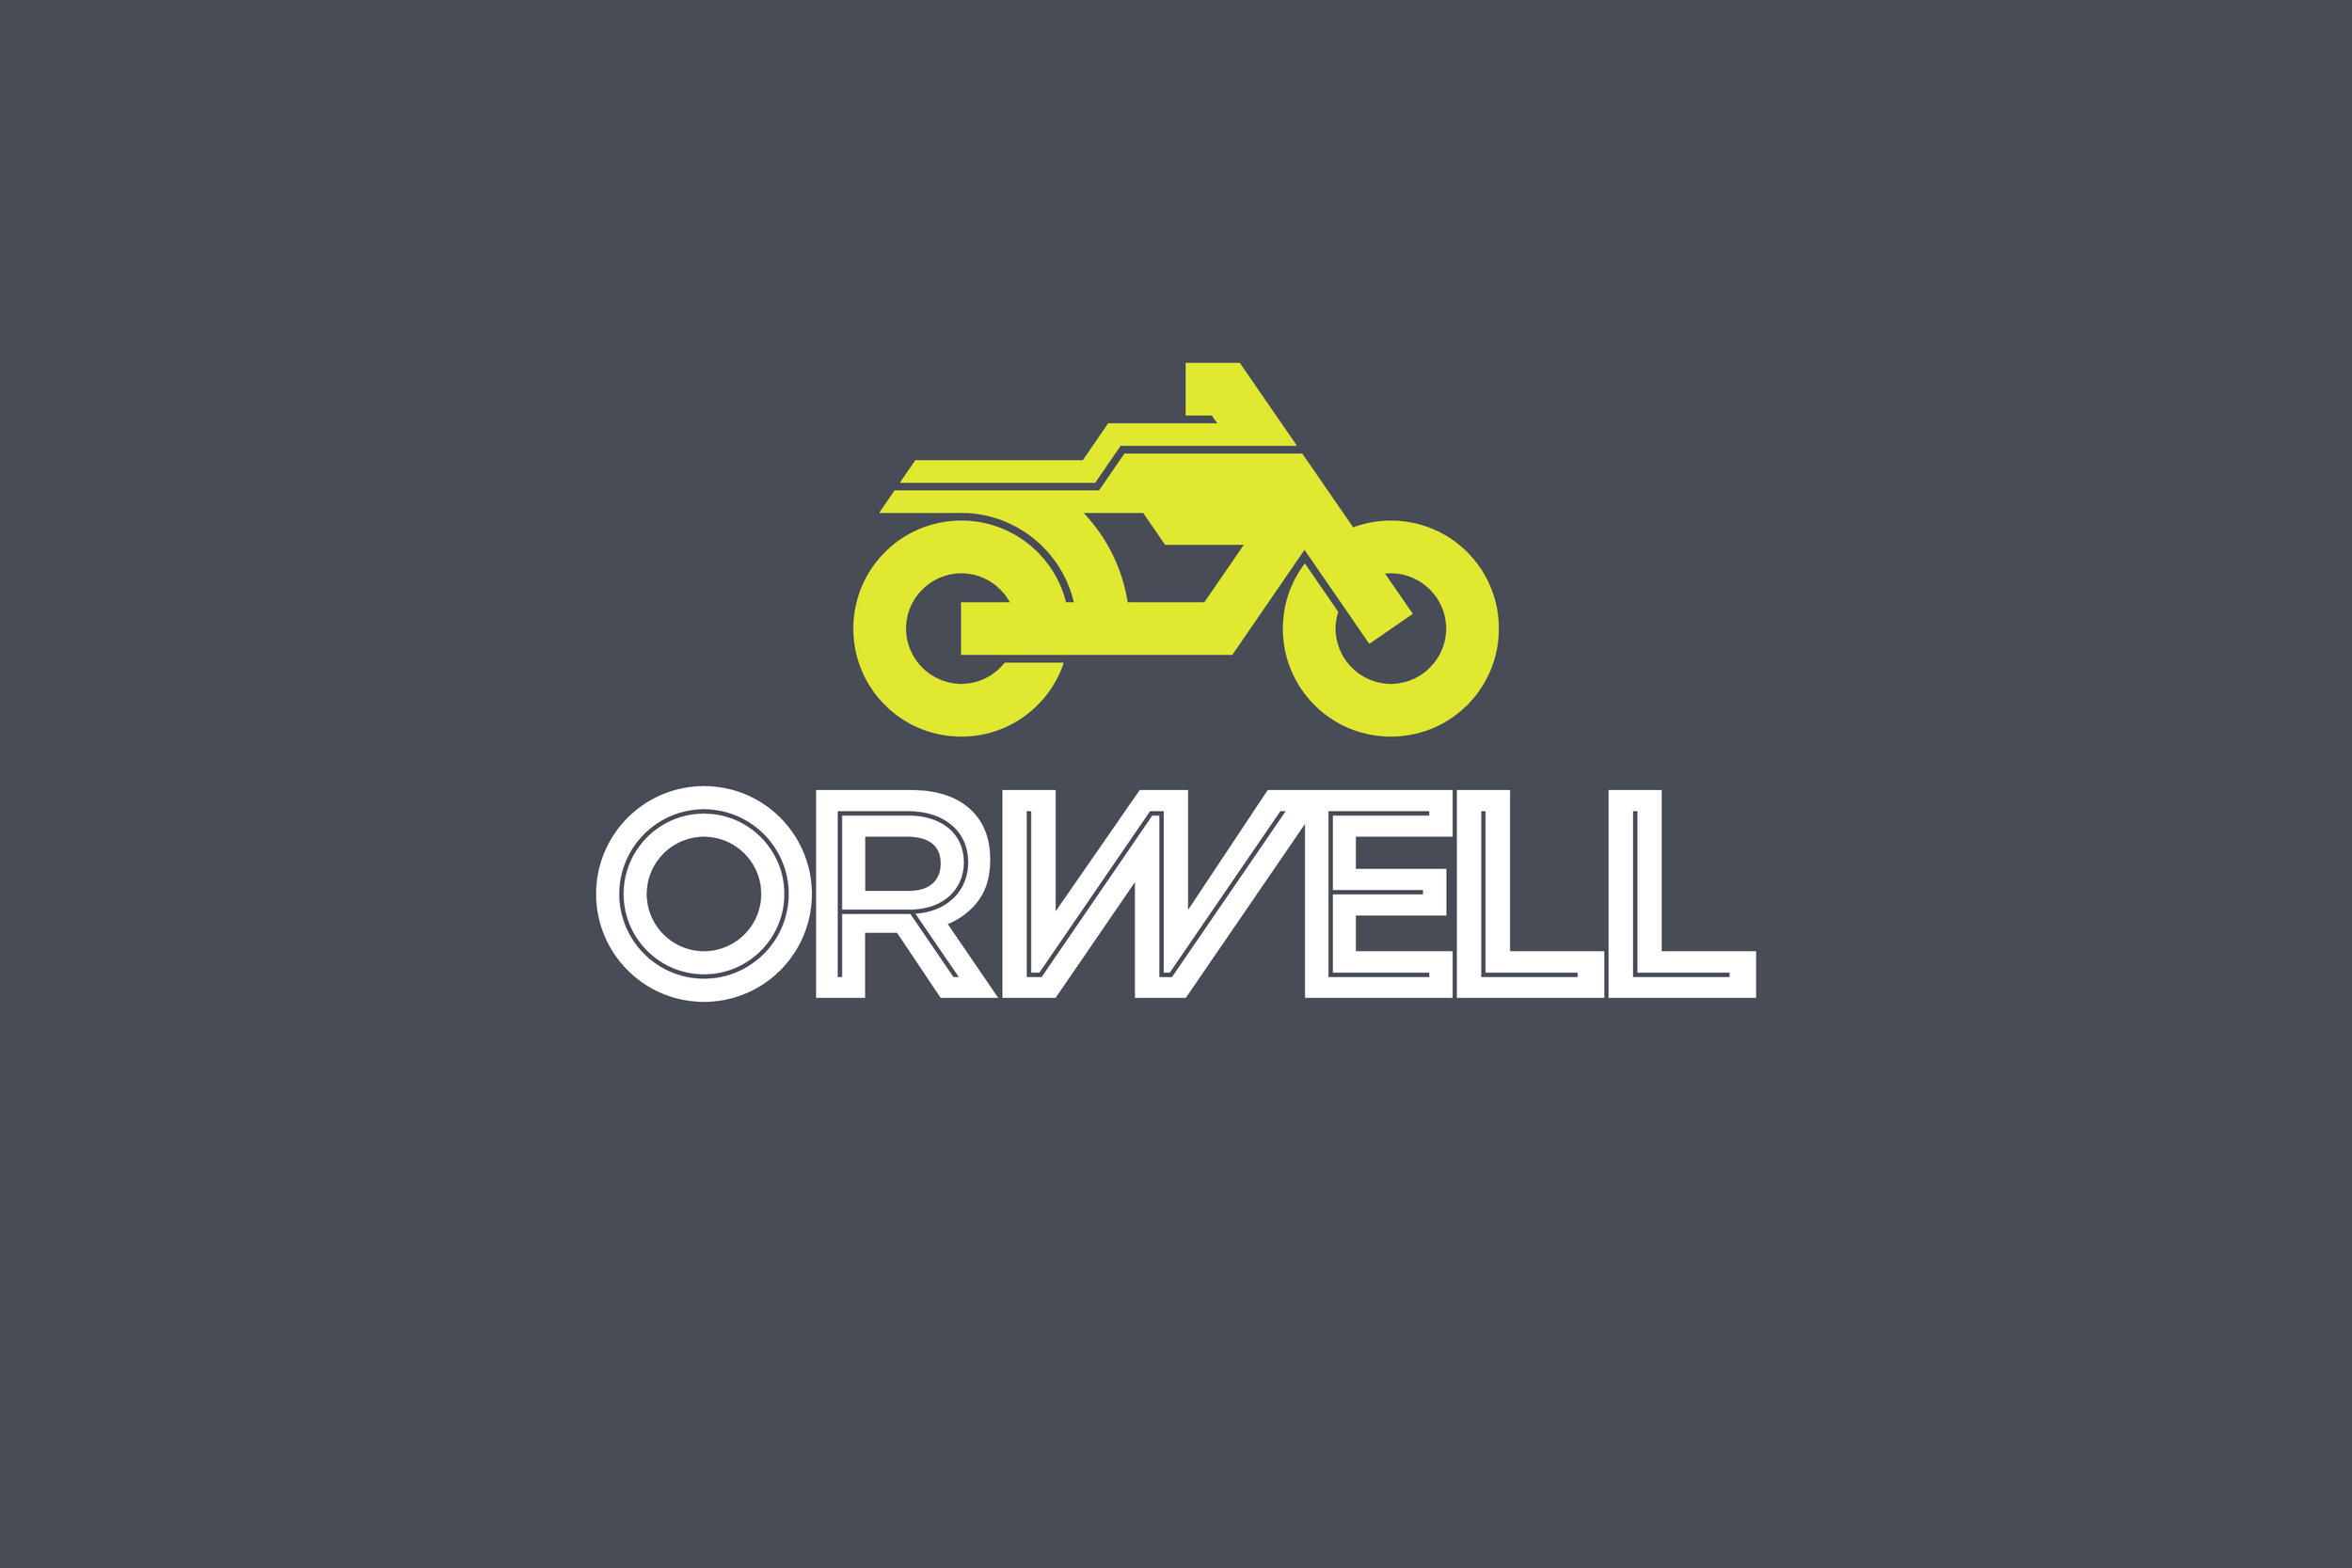 ORWELL MOTORCYCLES